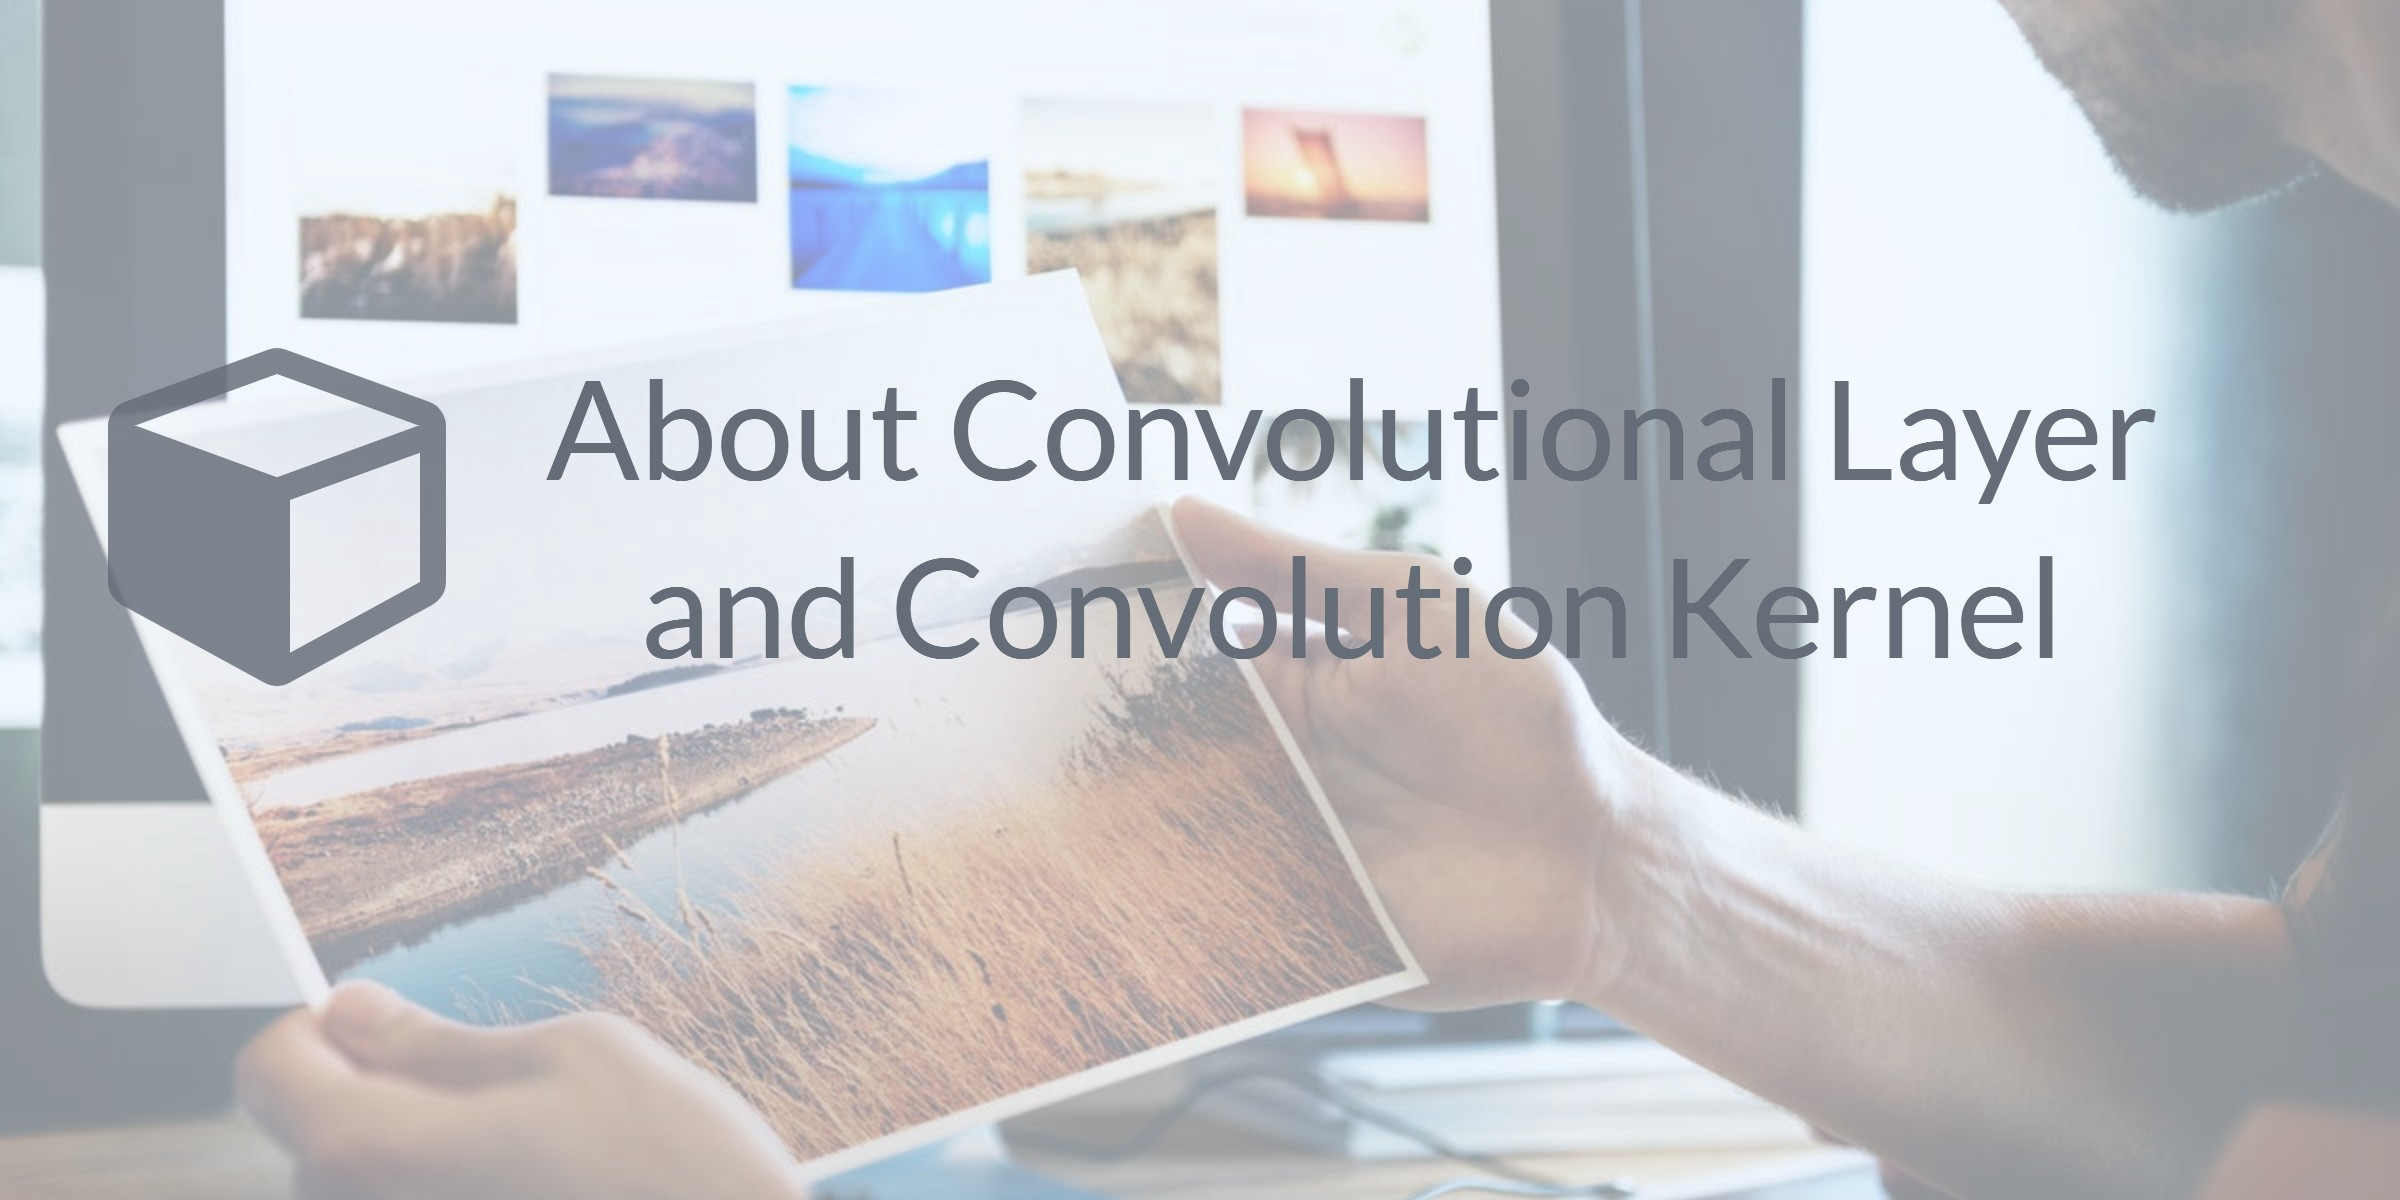 About Convolutional Layer and Convolution Kernel - Sicara's blog